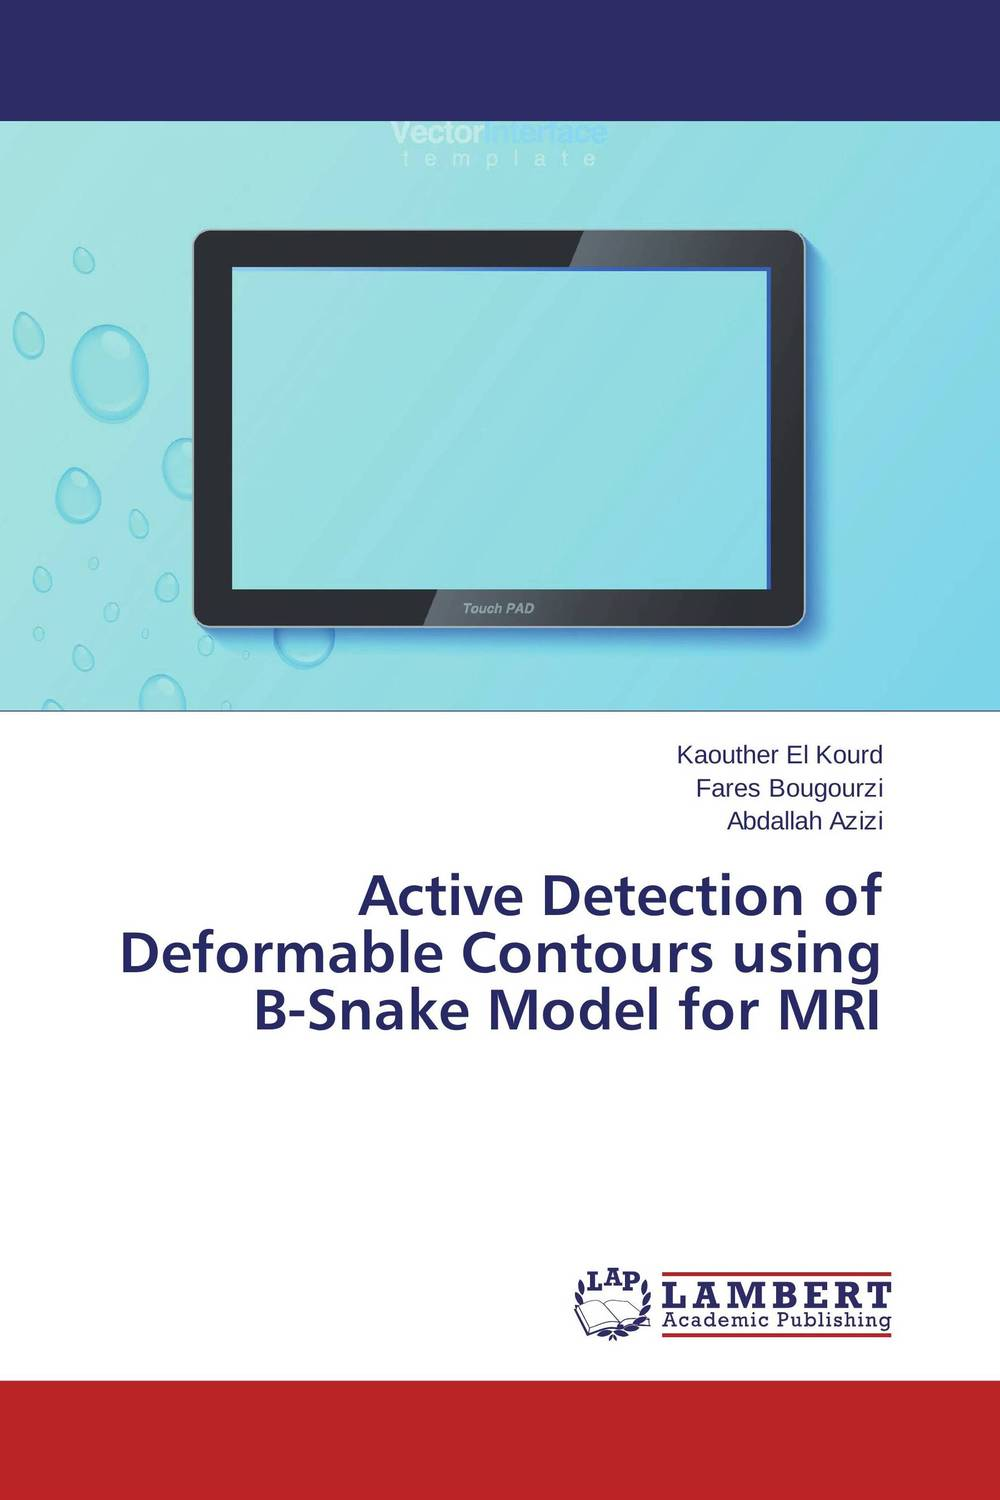 Active Detection of Deformable Contours using B-Snake Model for MRI